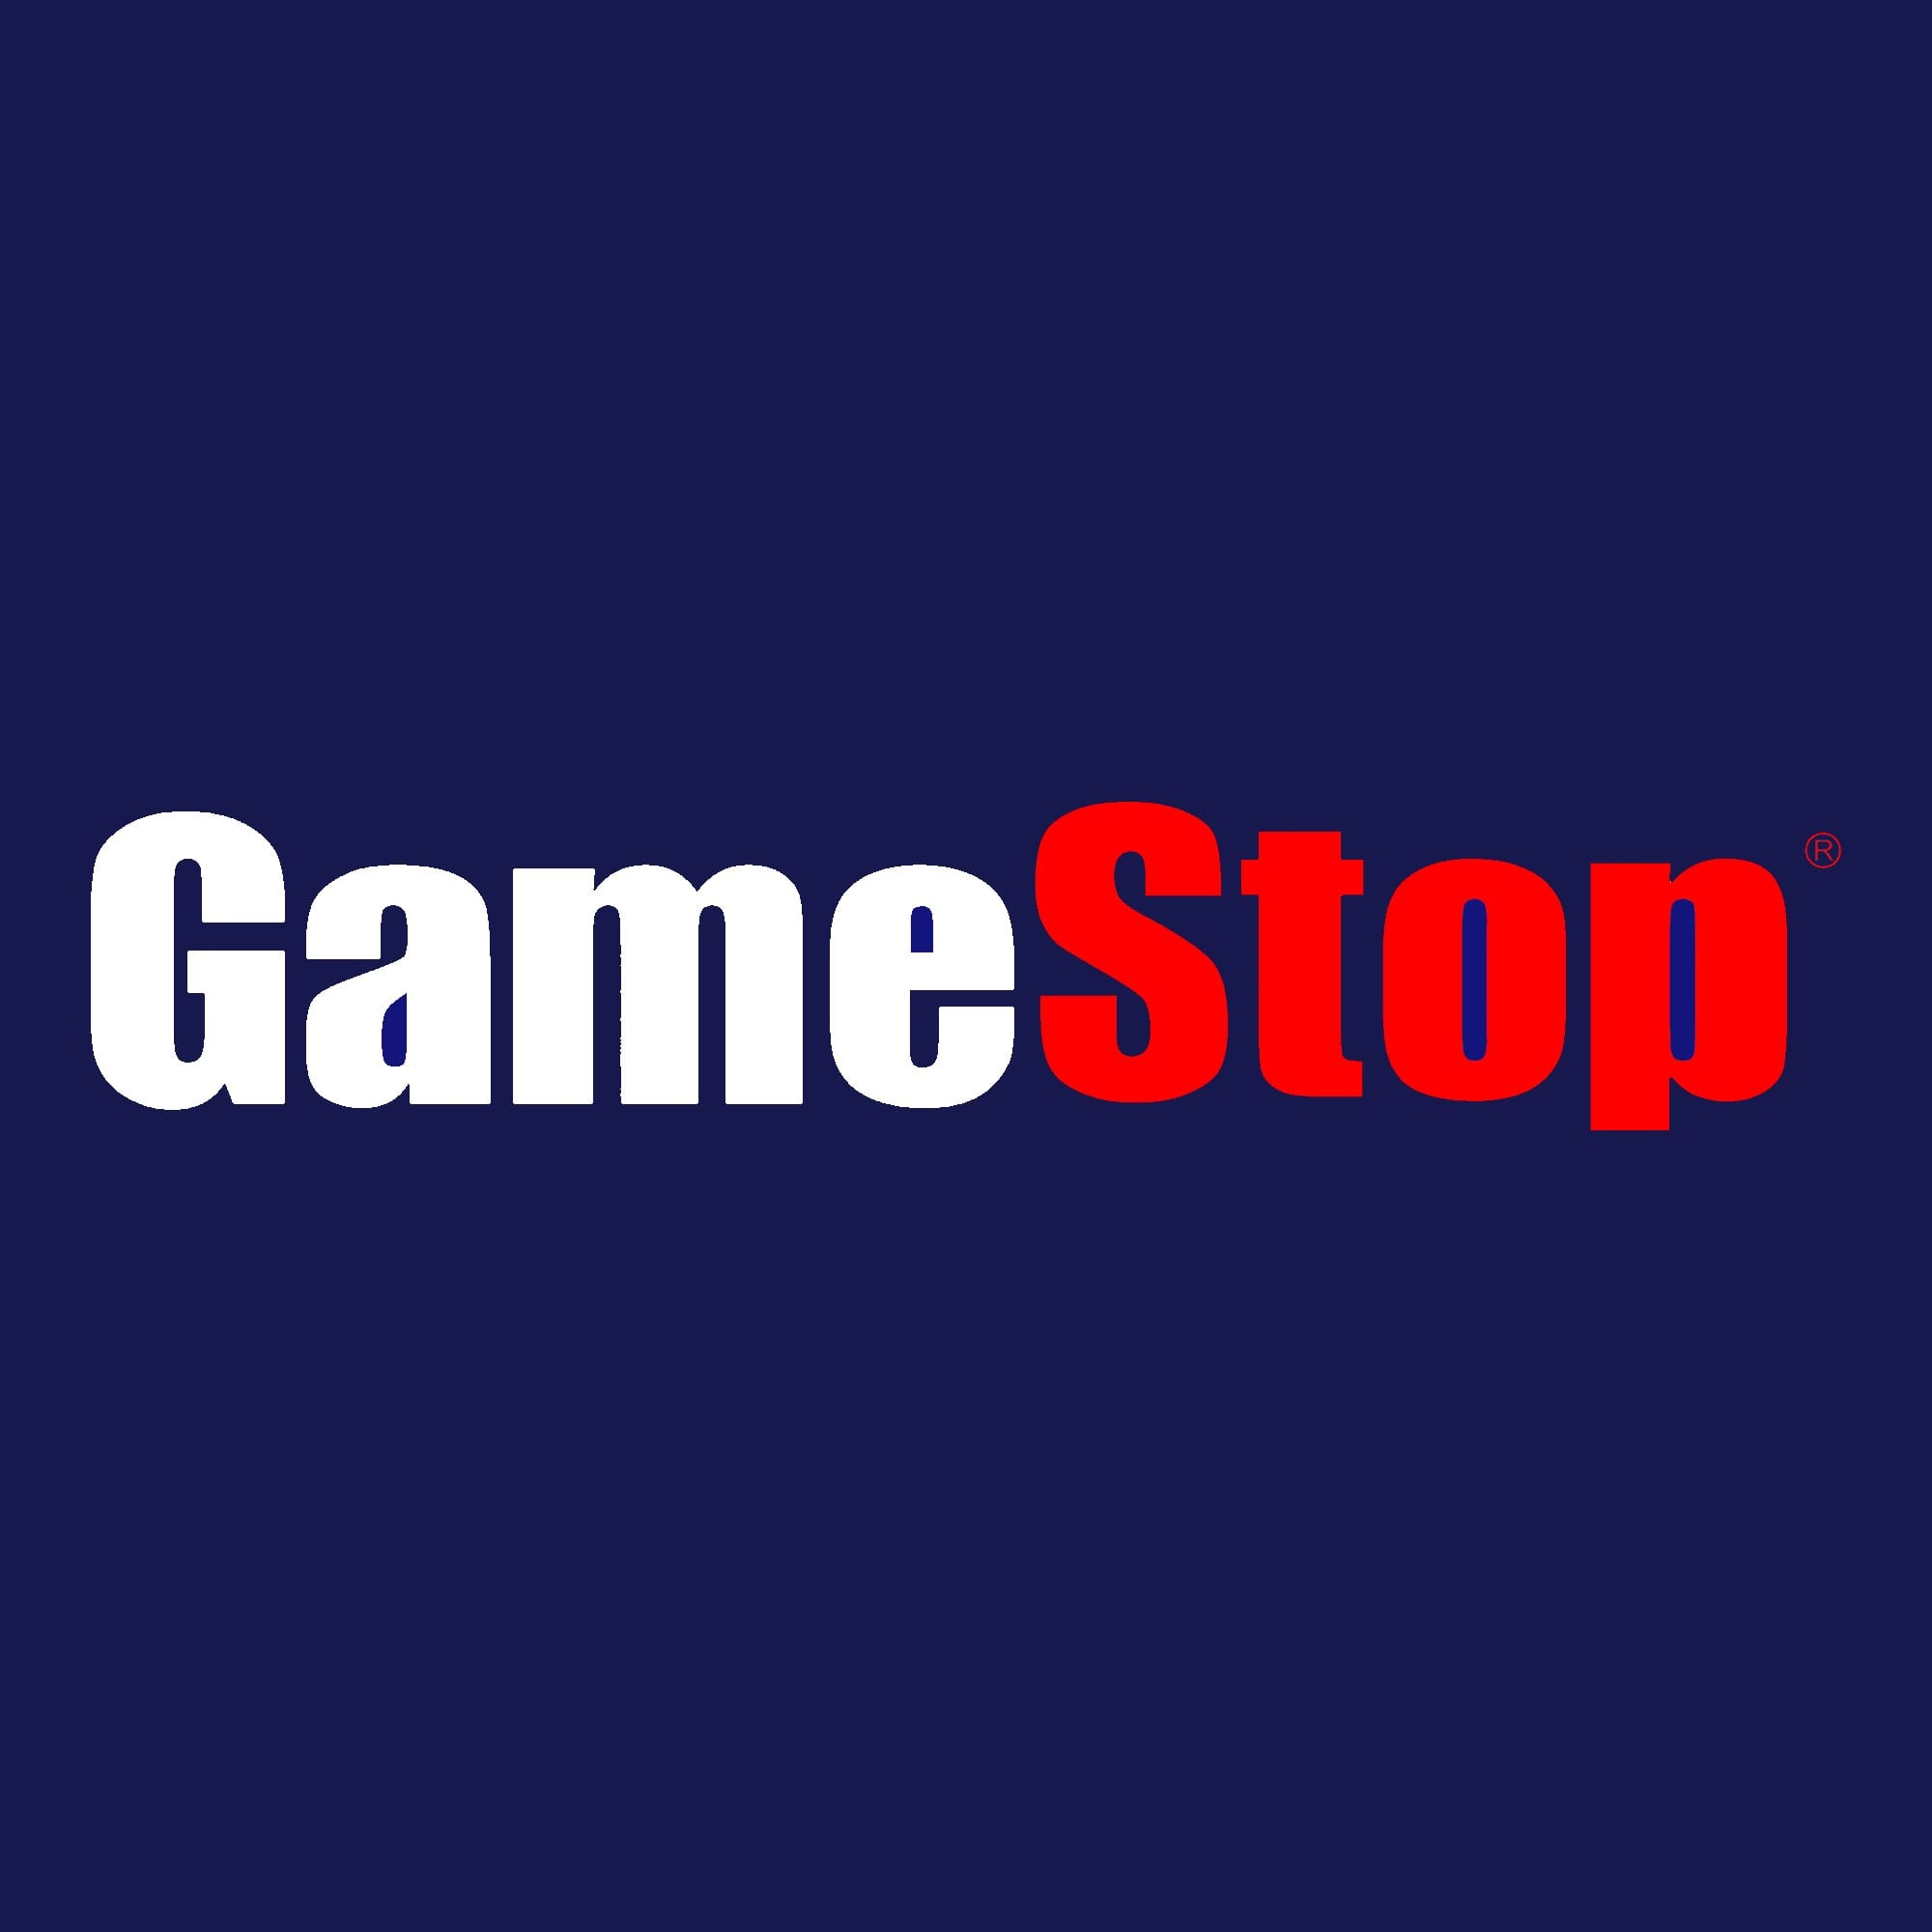 During GameStop's Fall Sale, Get 20% off Action Figures, Statues, and Replicas at GameStop.com!